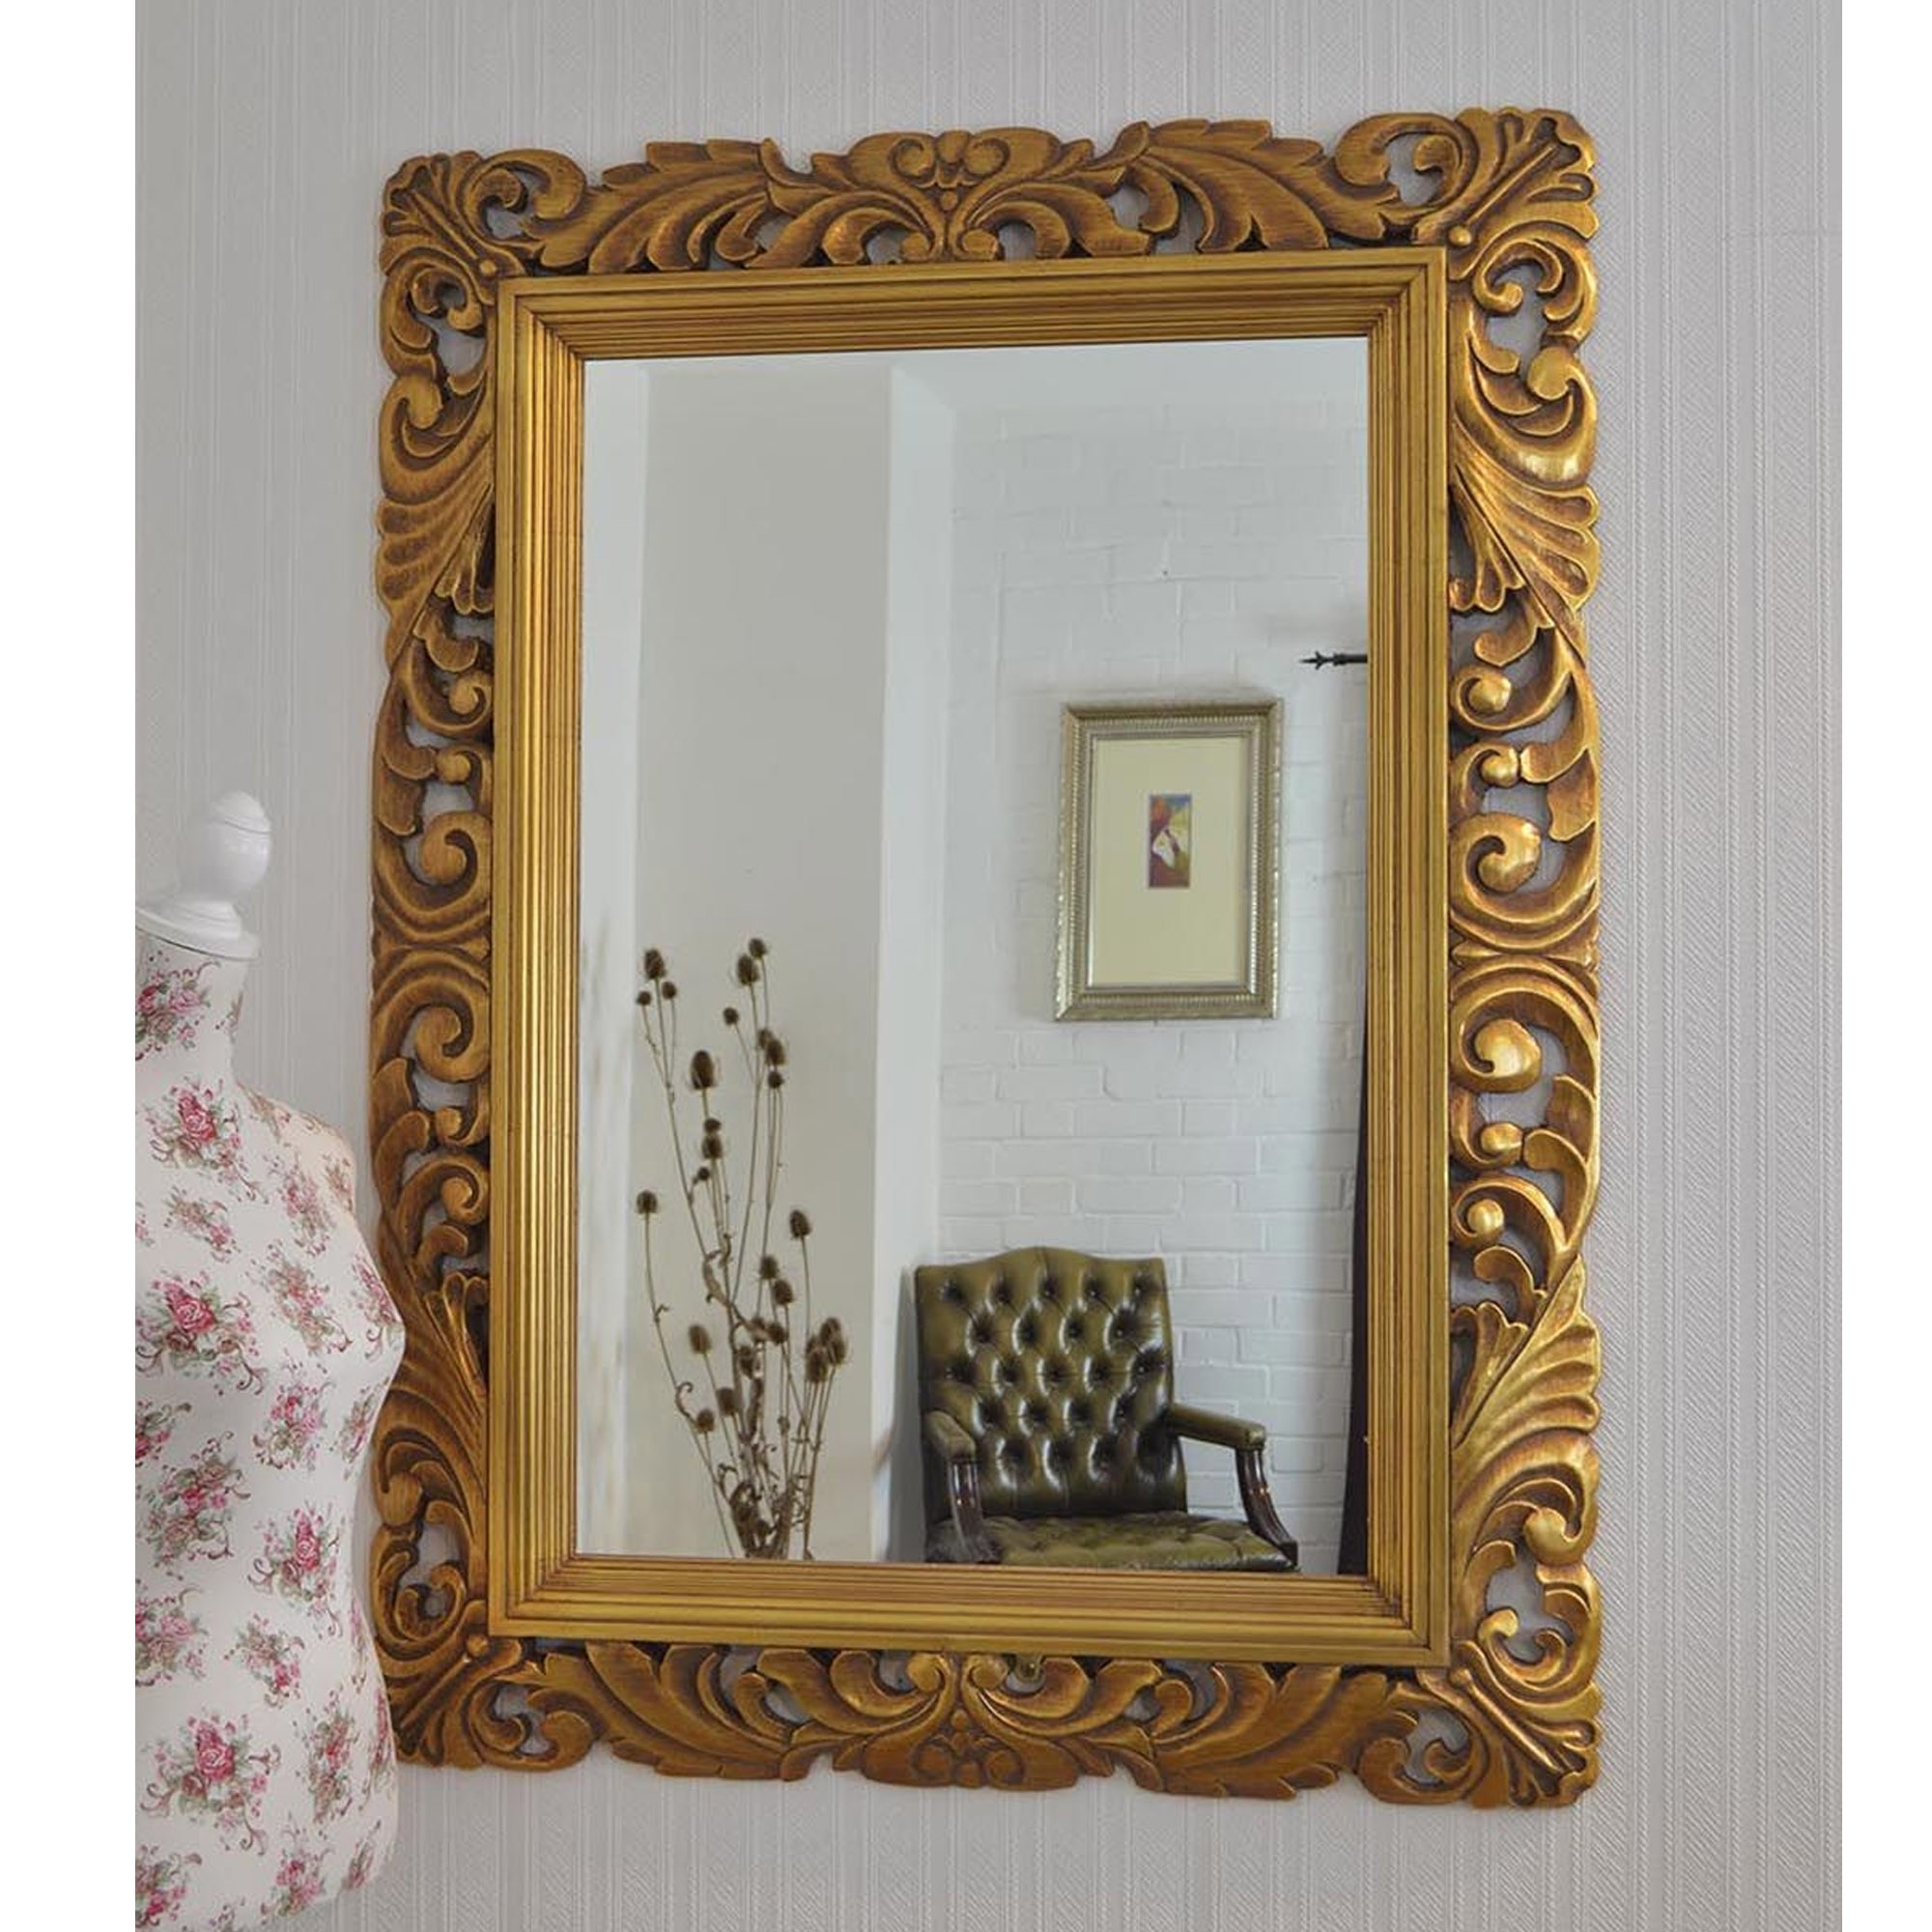 Antique Gold Wall Mirrors Throughout Recent Ornate Framed Gold Antique French Style Wall Mirror (Gallery 2 of 20)